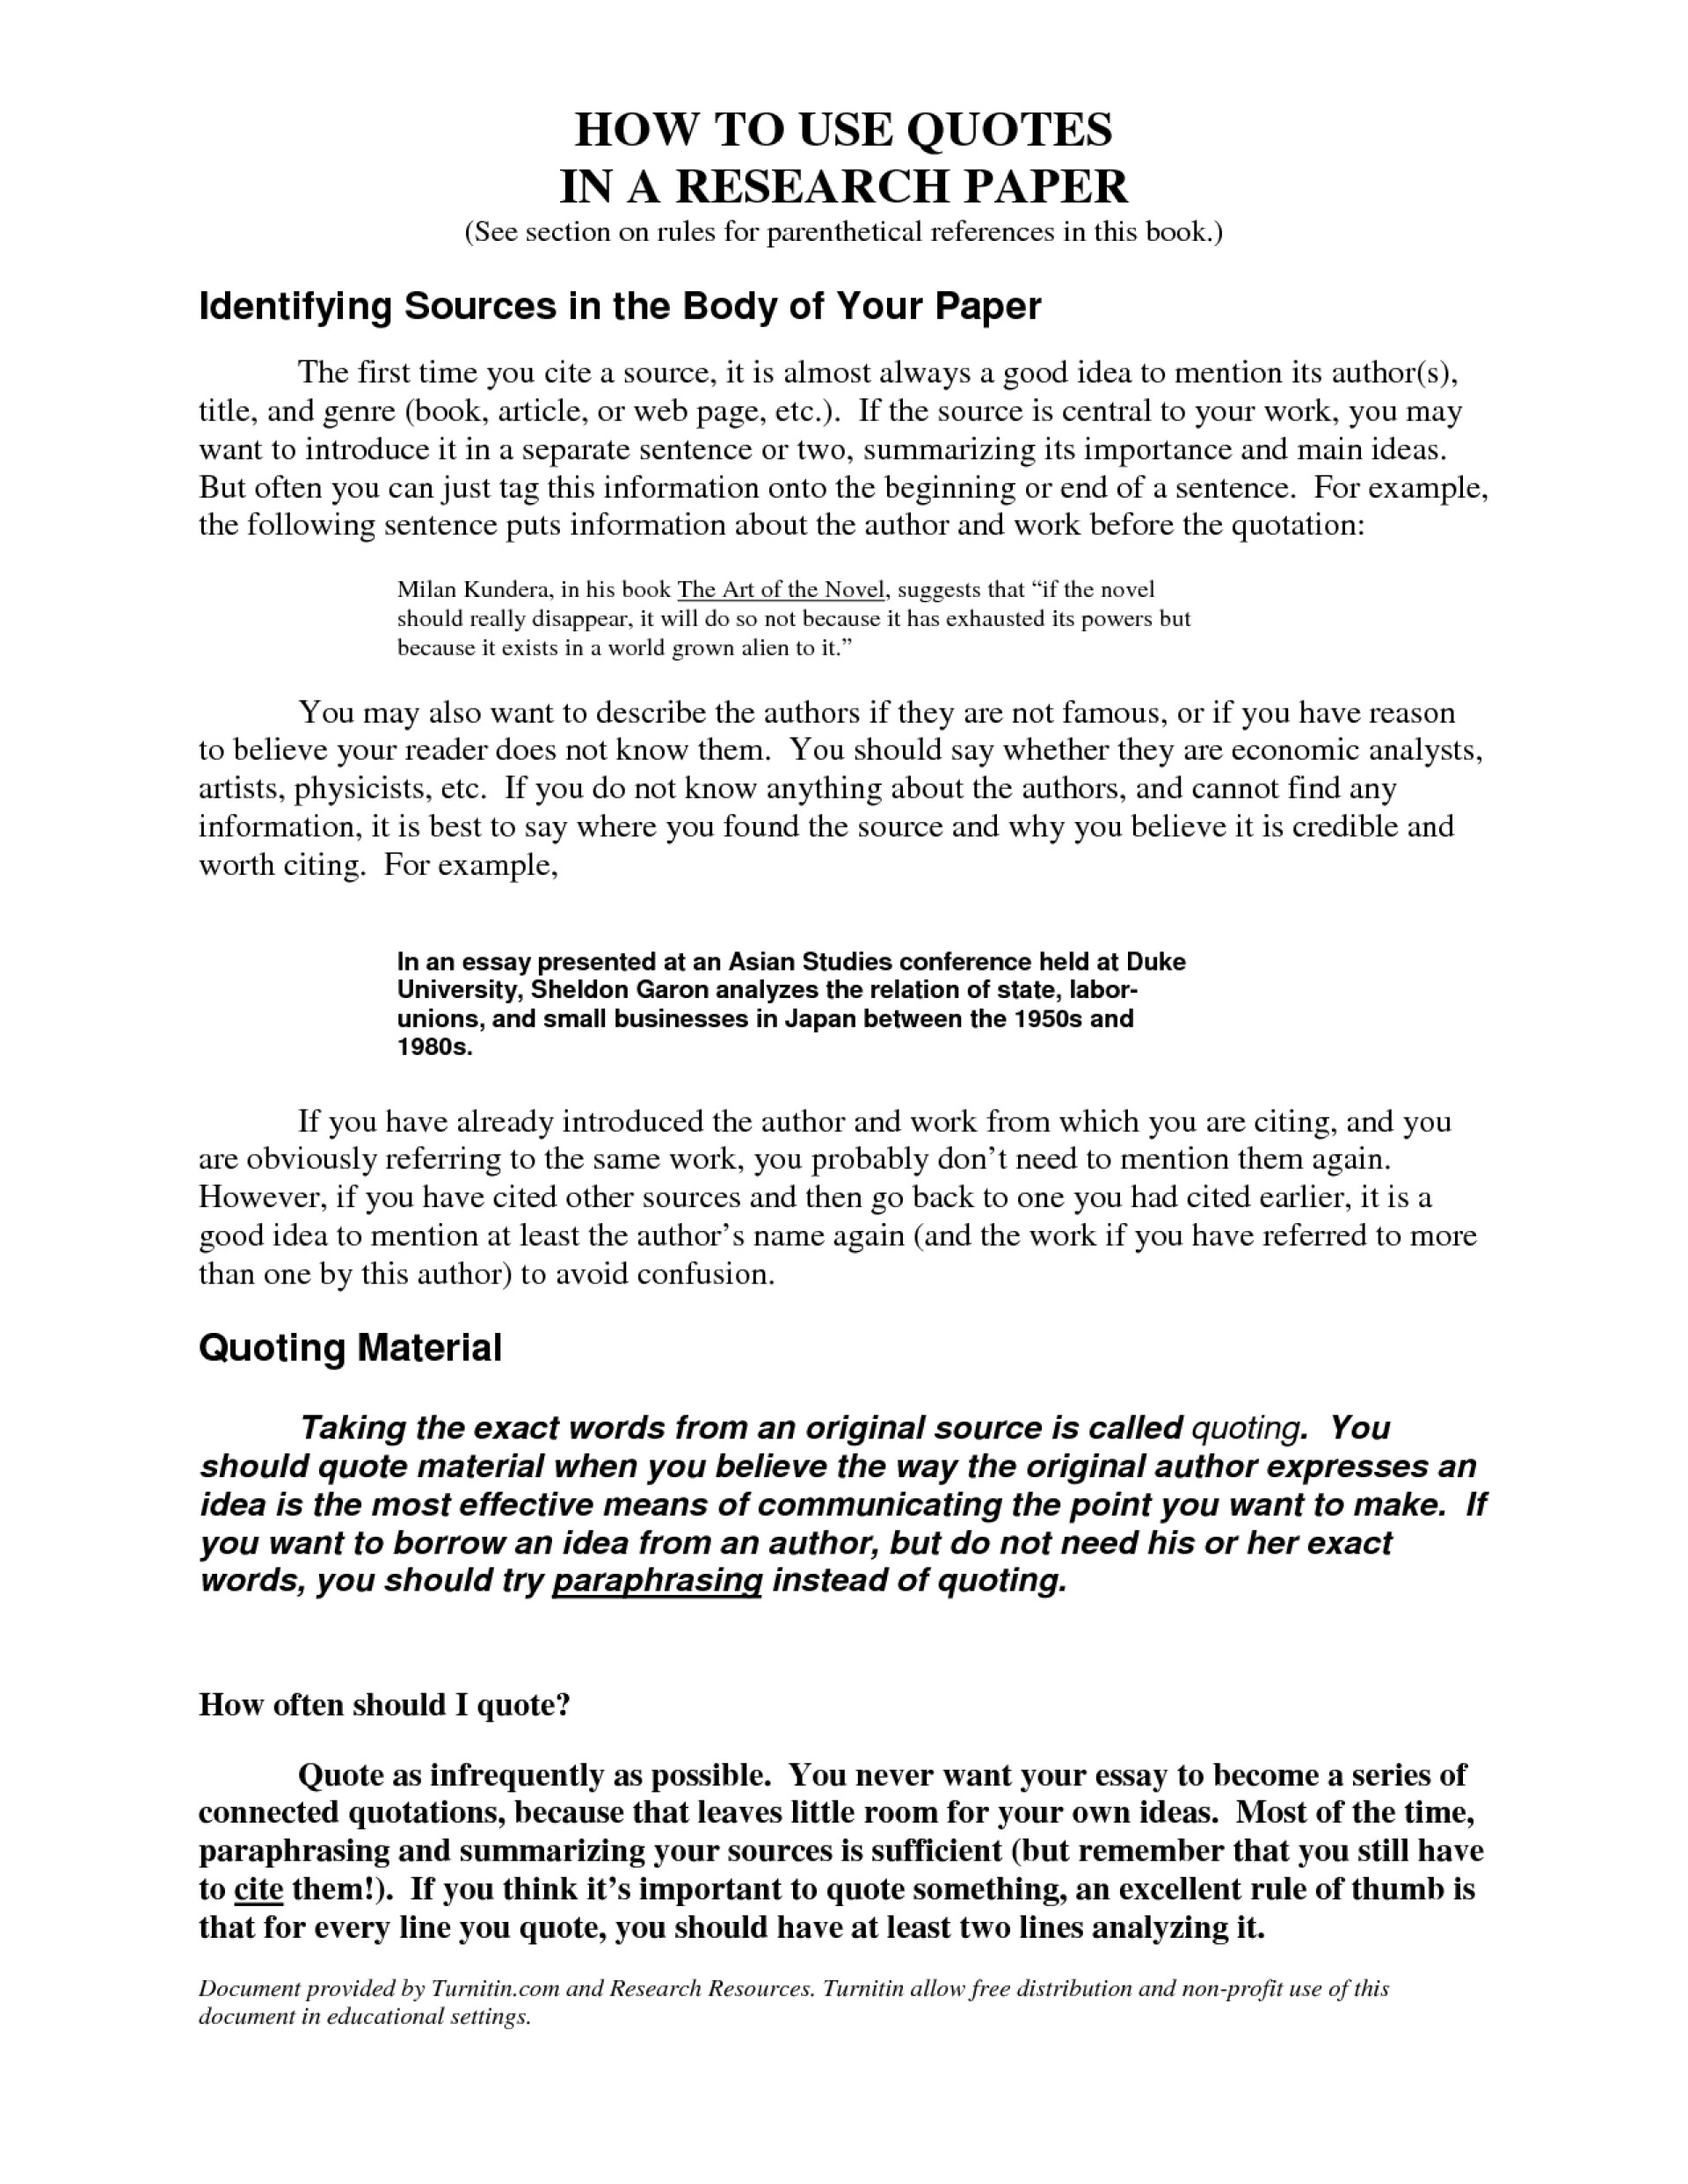 011 Best Solutions Of Writing Quotes In Essays Marvelous Embedding On Quotestopics Essay Example How To Quote Book Formidable A An Cite Mla Using Title 1920